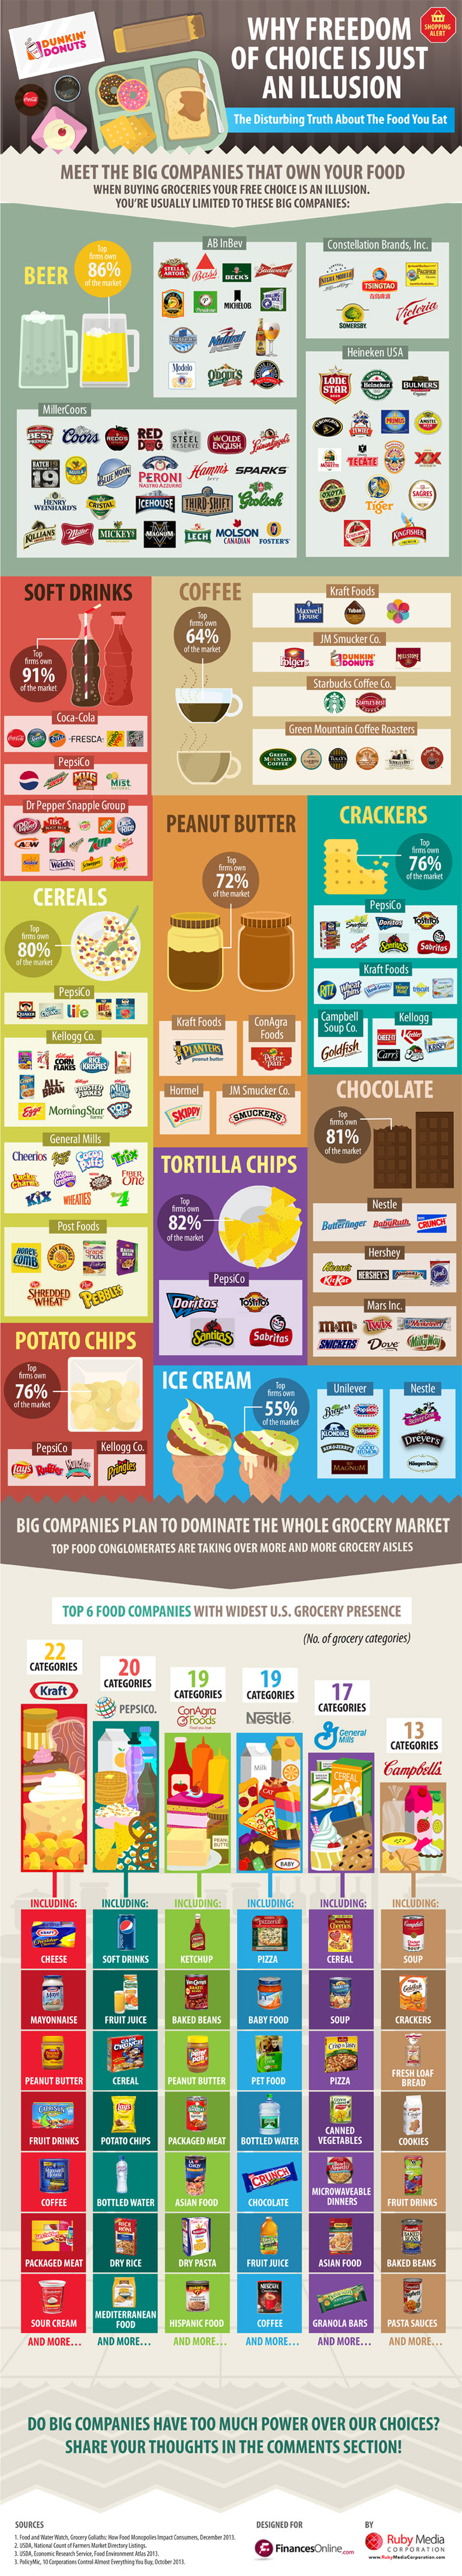 Top Grocery Brands Comparison: Latest Research On Big Food Companies Exploiting Our Shopping Habits